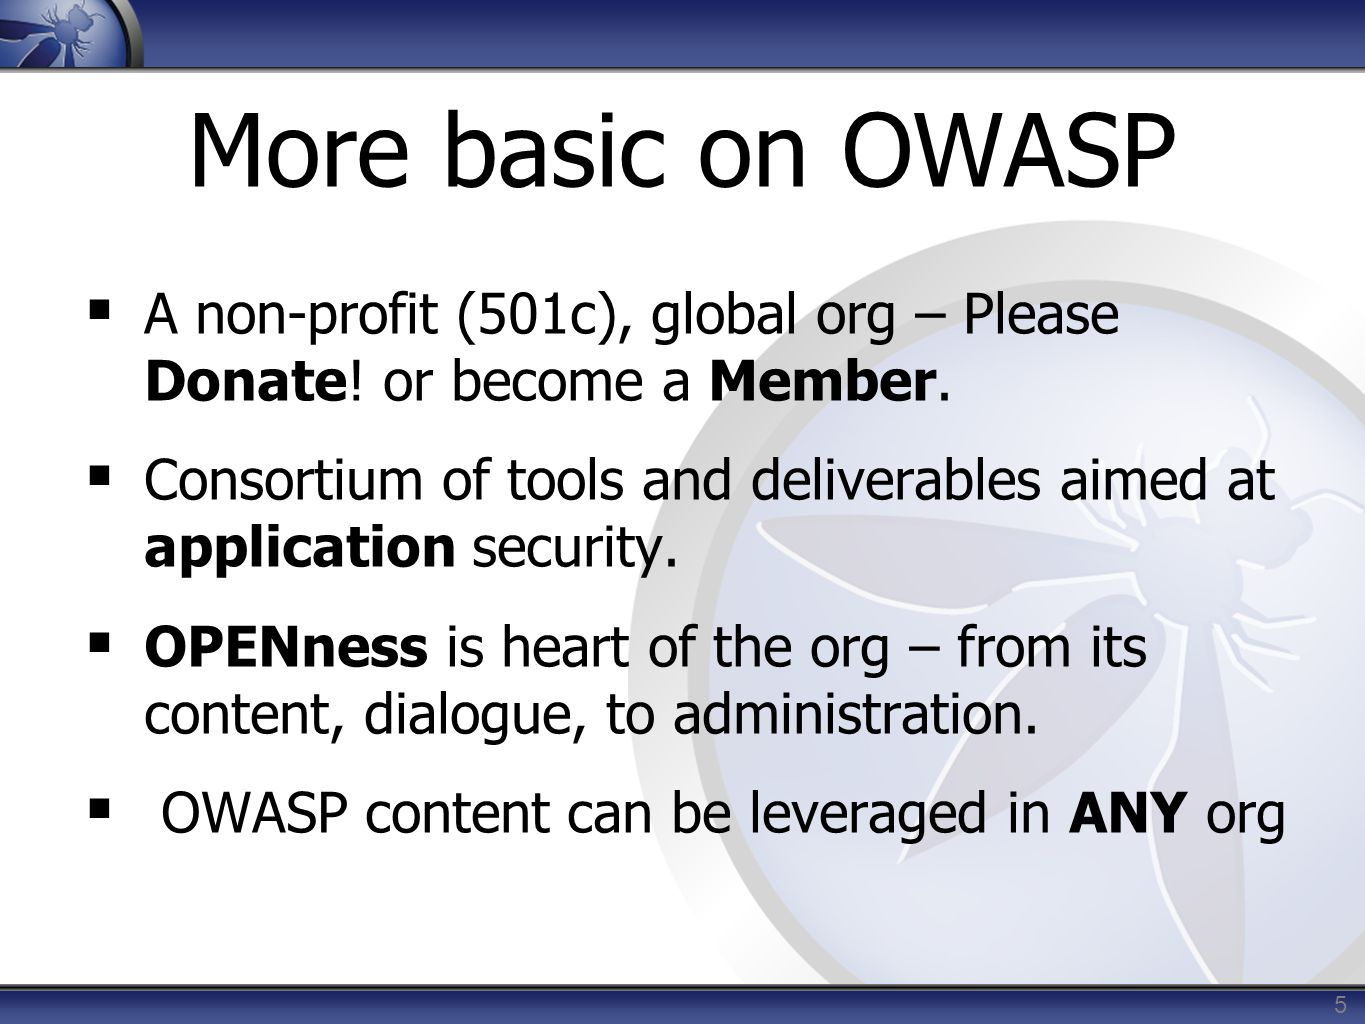 26 USF: With OWASP  Fiscal Year 2008  Web Application security reviews  Utilized only internal security analysts  Used the OWASP Testing Guide v2 plus WebScarab as their standard for testing web applications  Printed guide copies for all 8 analysts for $200  USF security group handles remediation tasks  Average engagement cost: $0 per site  Assumes salaries are a fixed cost  No new staff added for this effort  Assessed 48 sites in 2008